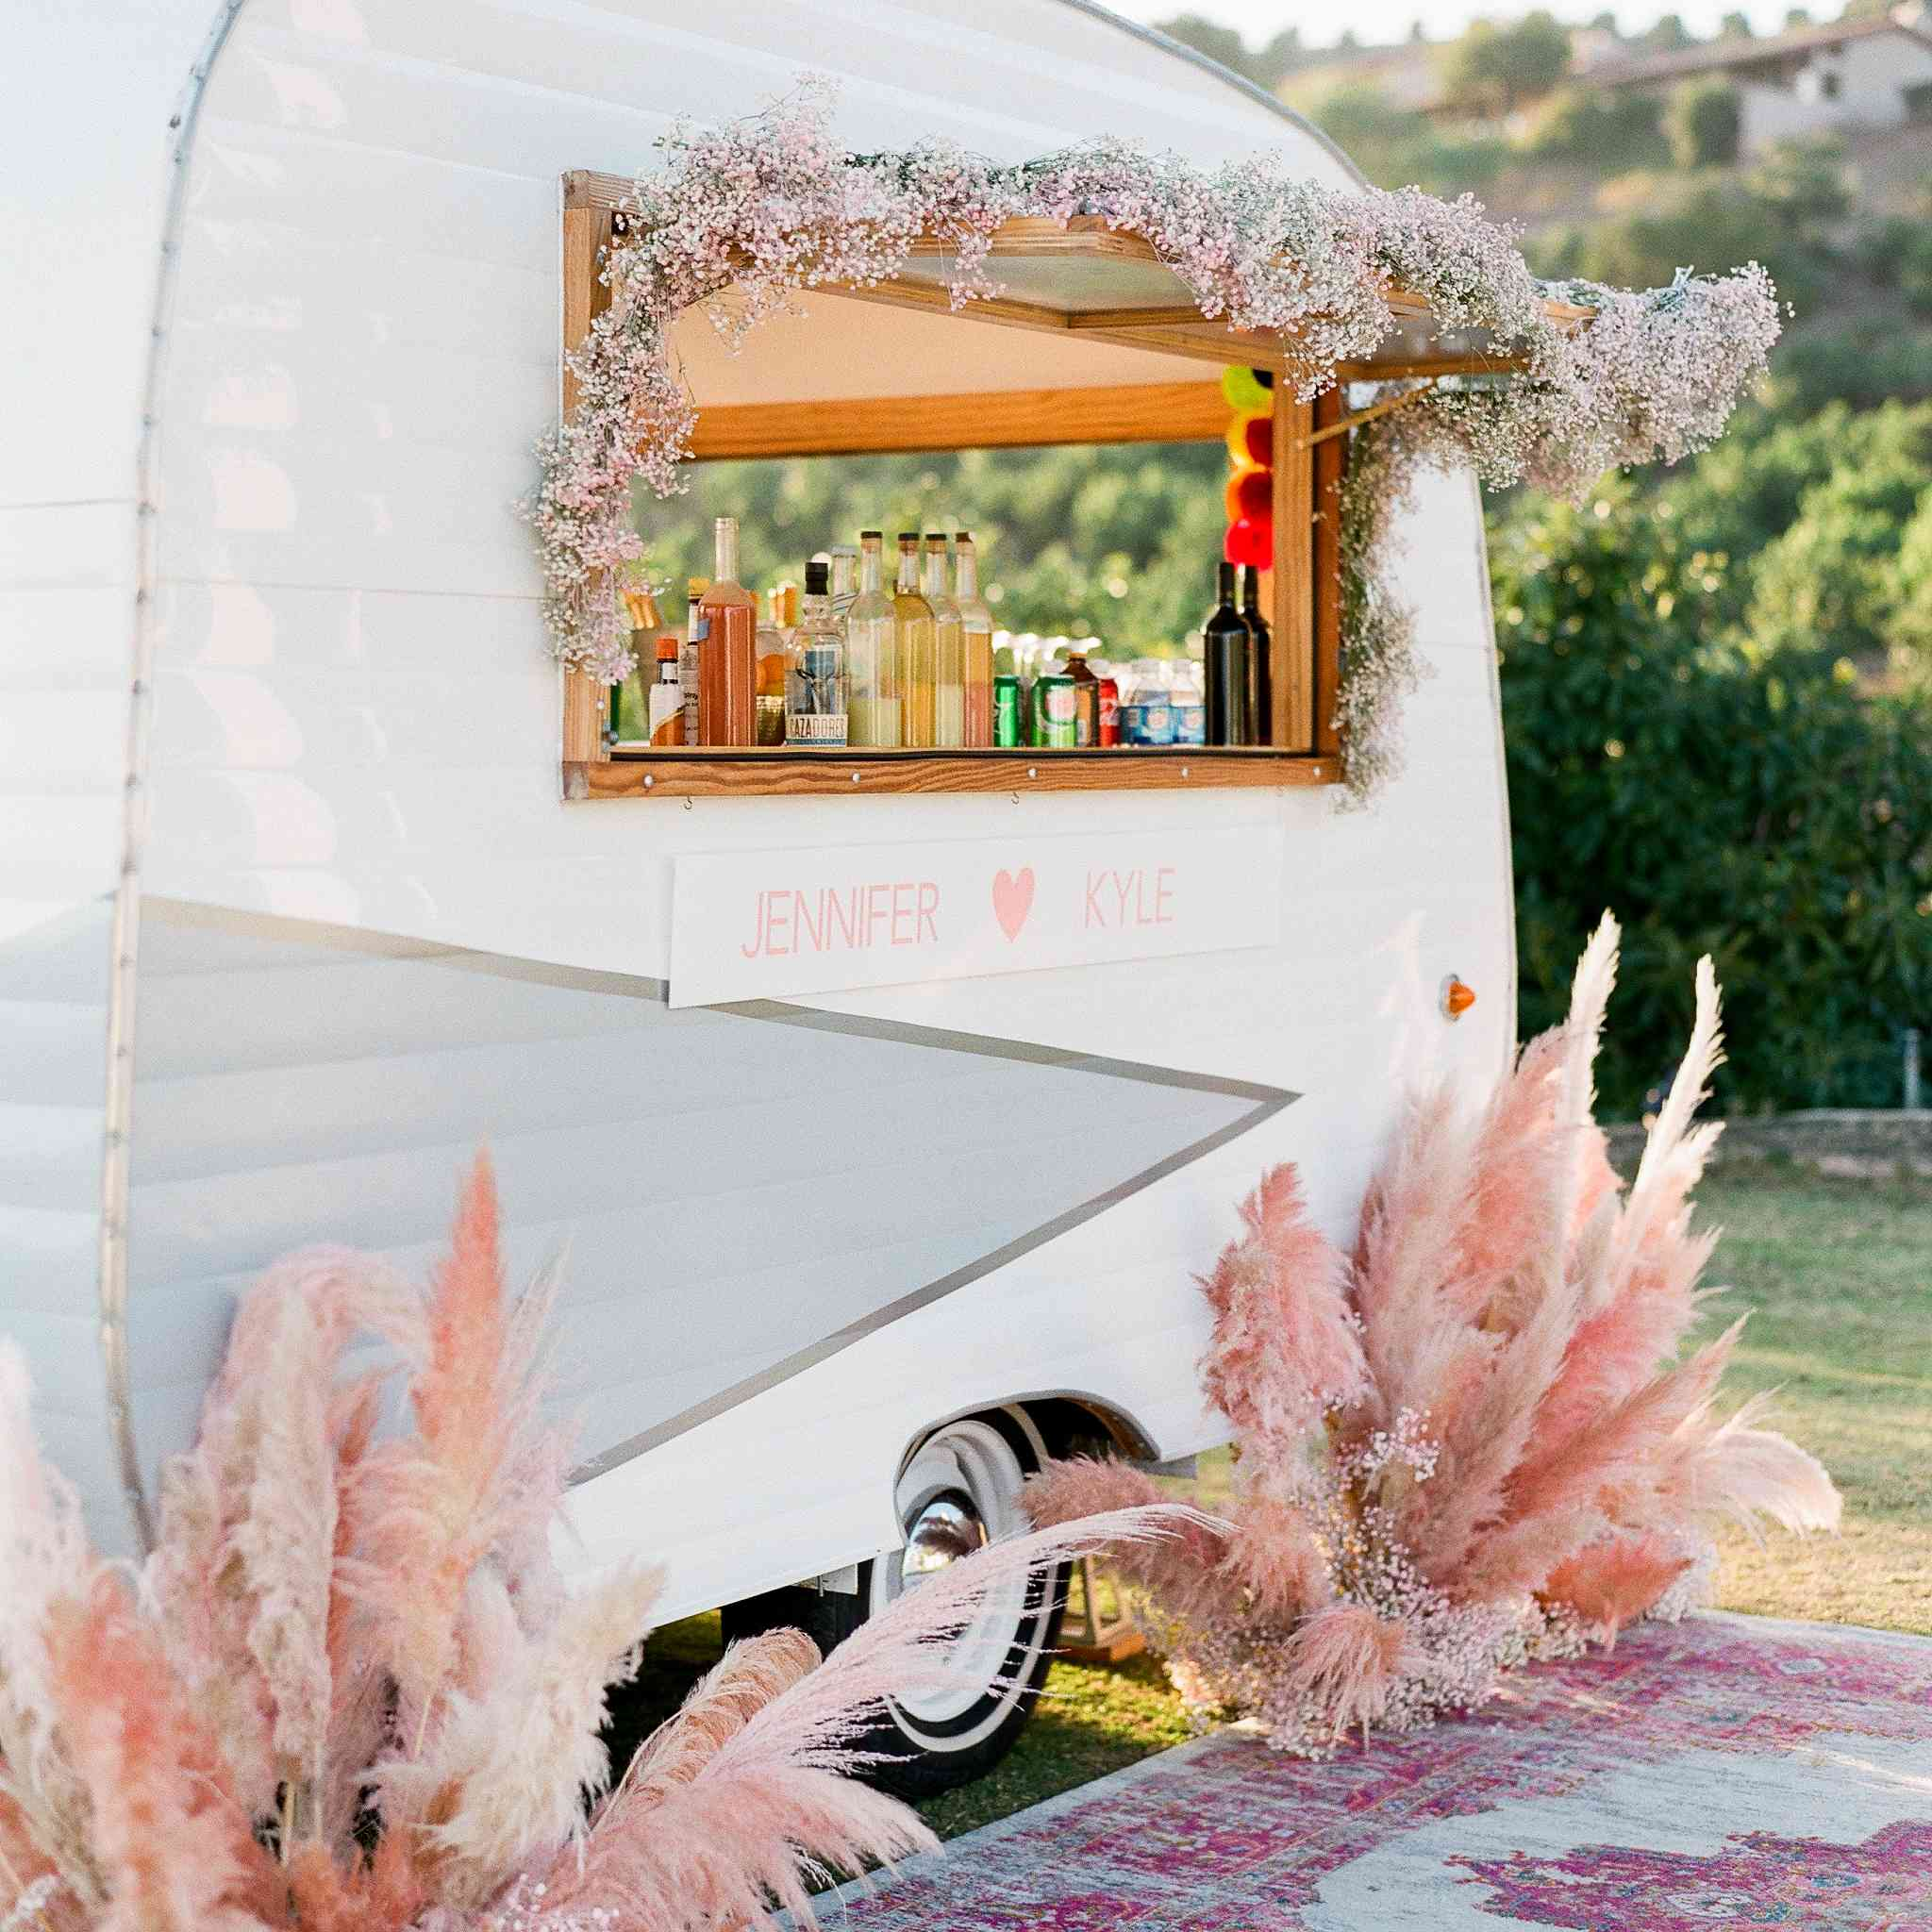 A mobile bar cart decorated with pink baby's breath and pink pampas grass